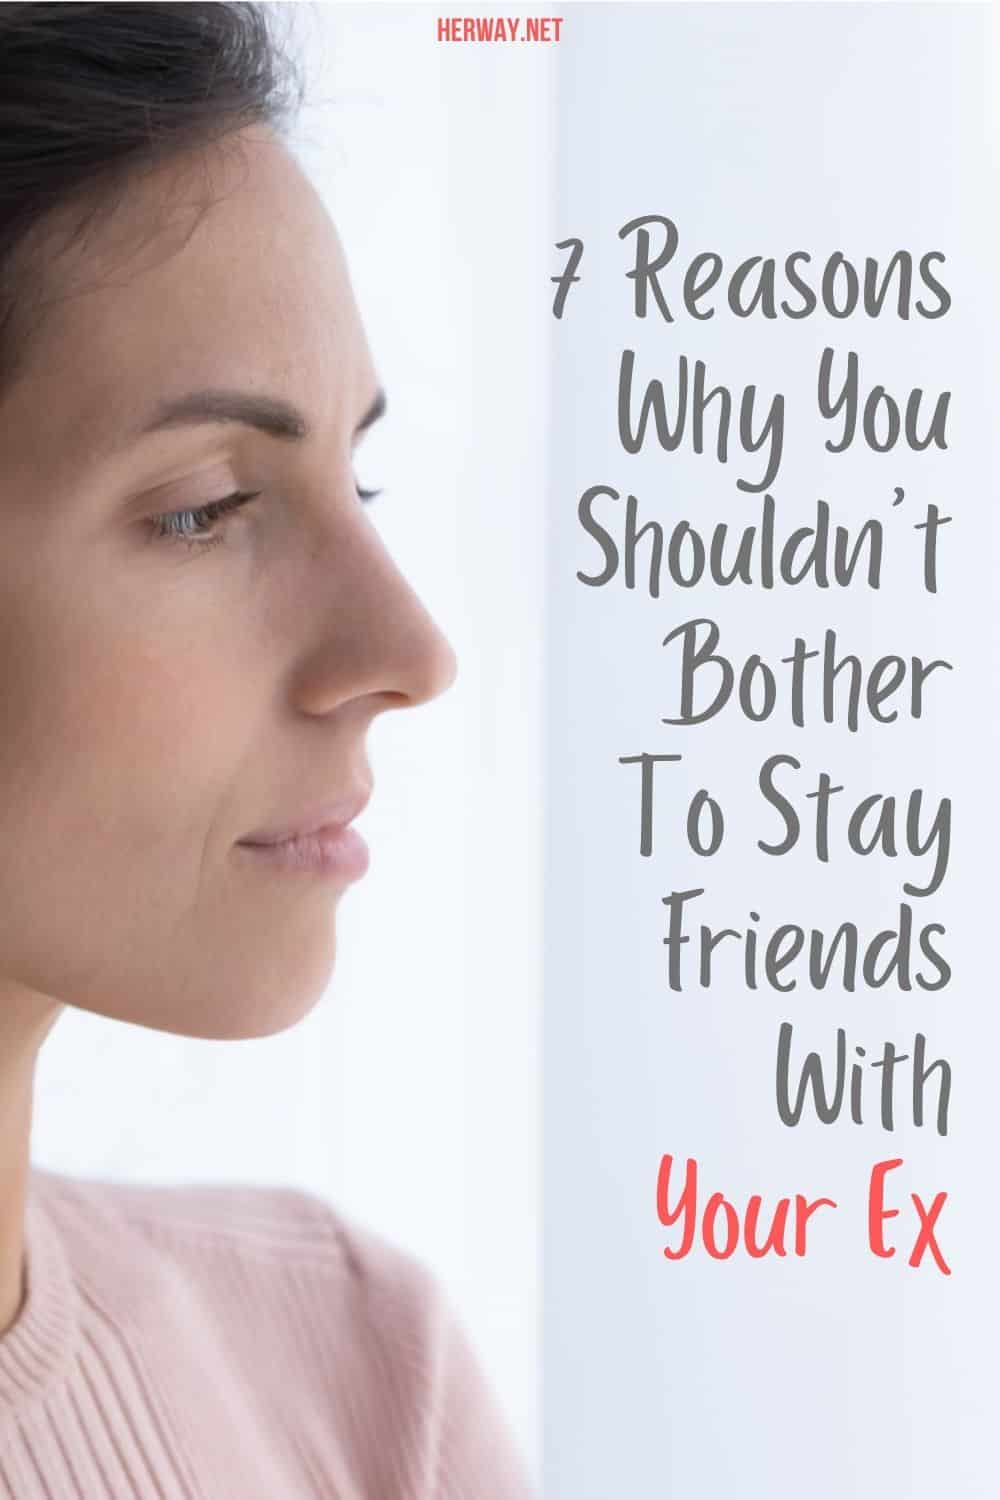 7 Reasons Why You Shouldn't Bother To Stay Friends With Your Ex